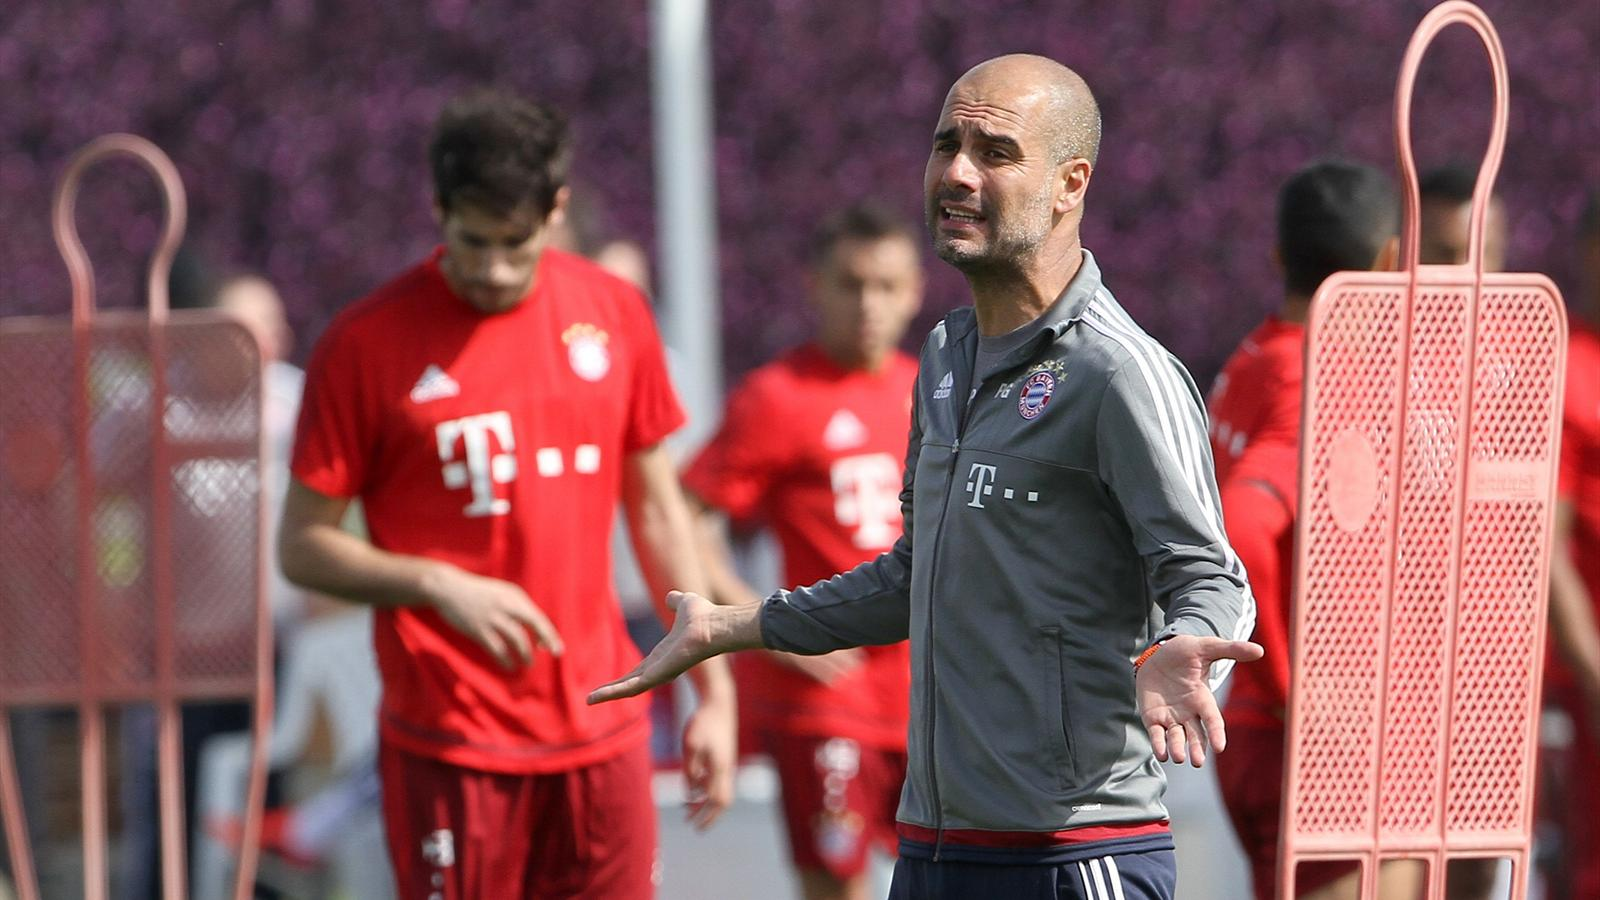 Bayern Munich's coach Pep Guardiola gestures during a training session at his team winter training camp in Doha, Qatar January 7, 2016